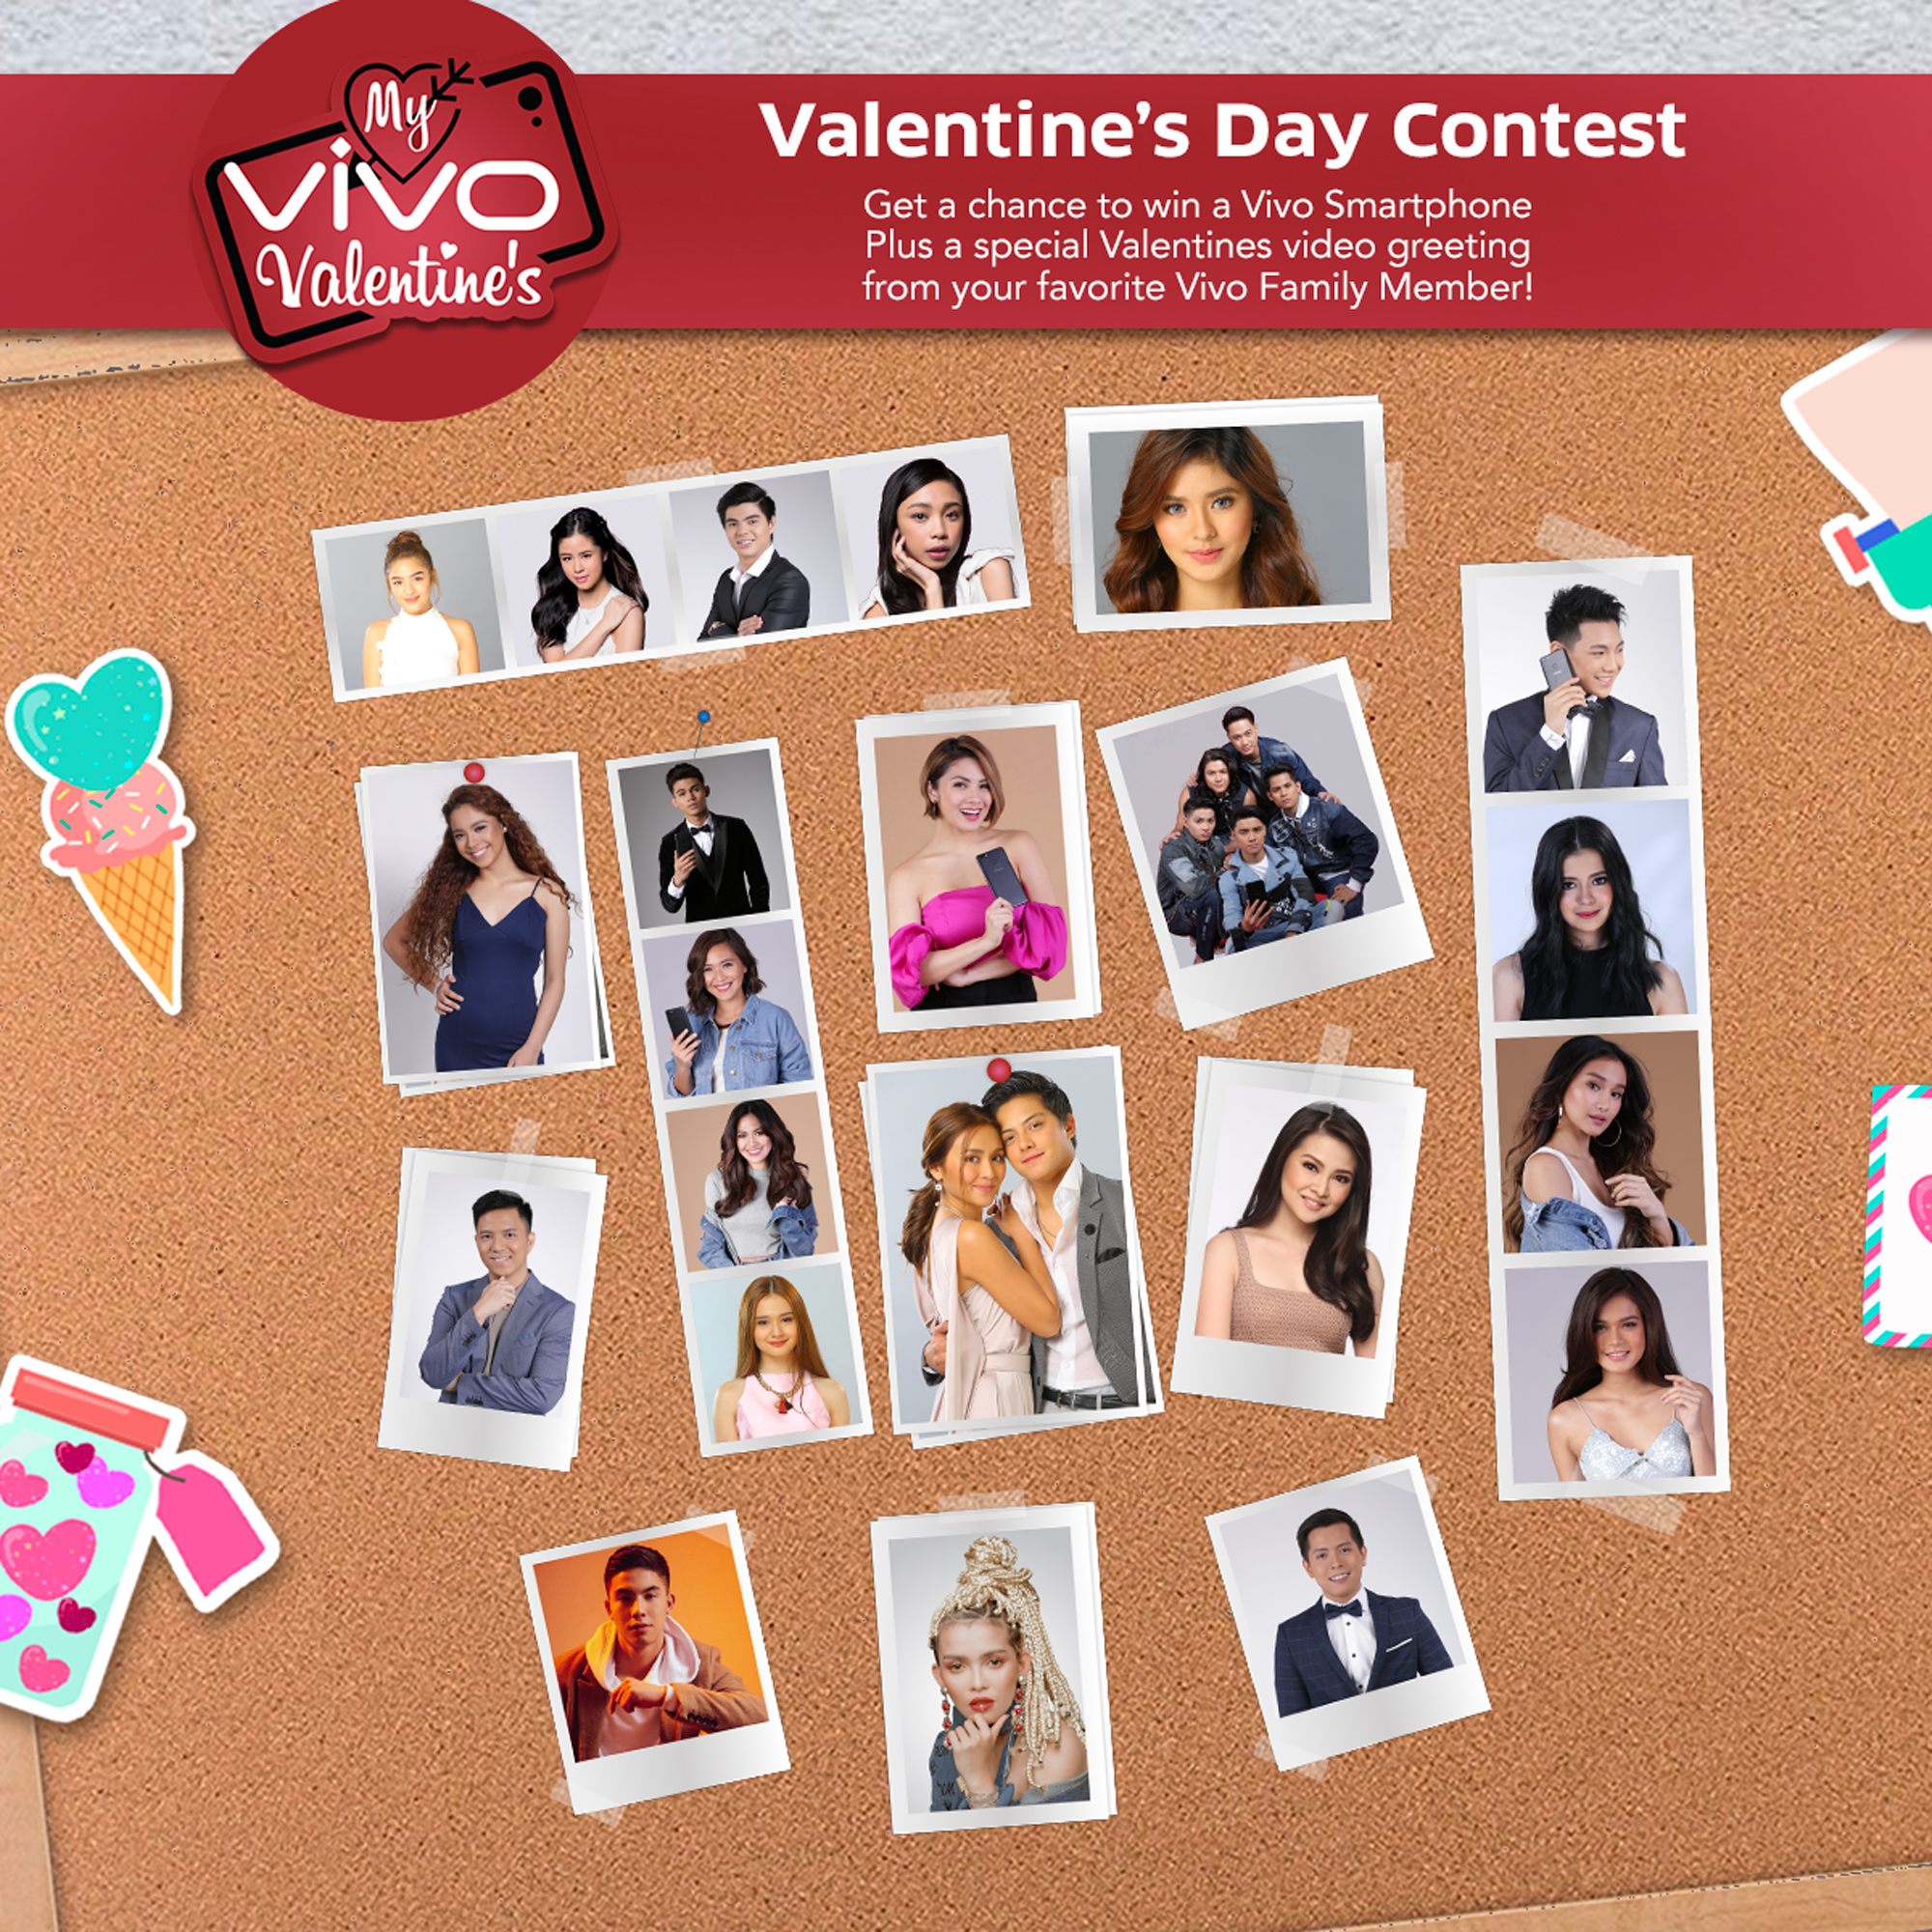 A whole lot of love this February with My Vivo Valentine Selfie Contest